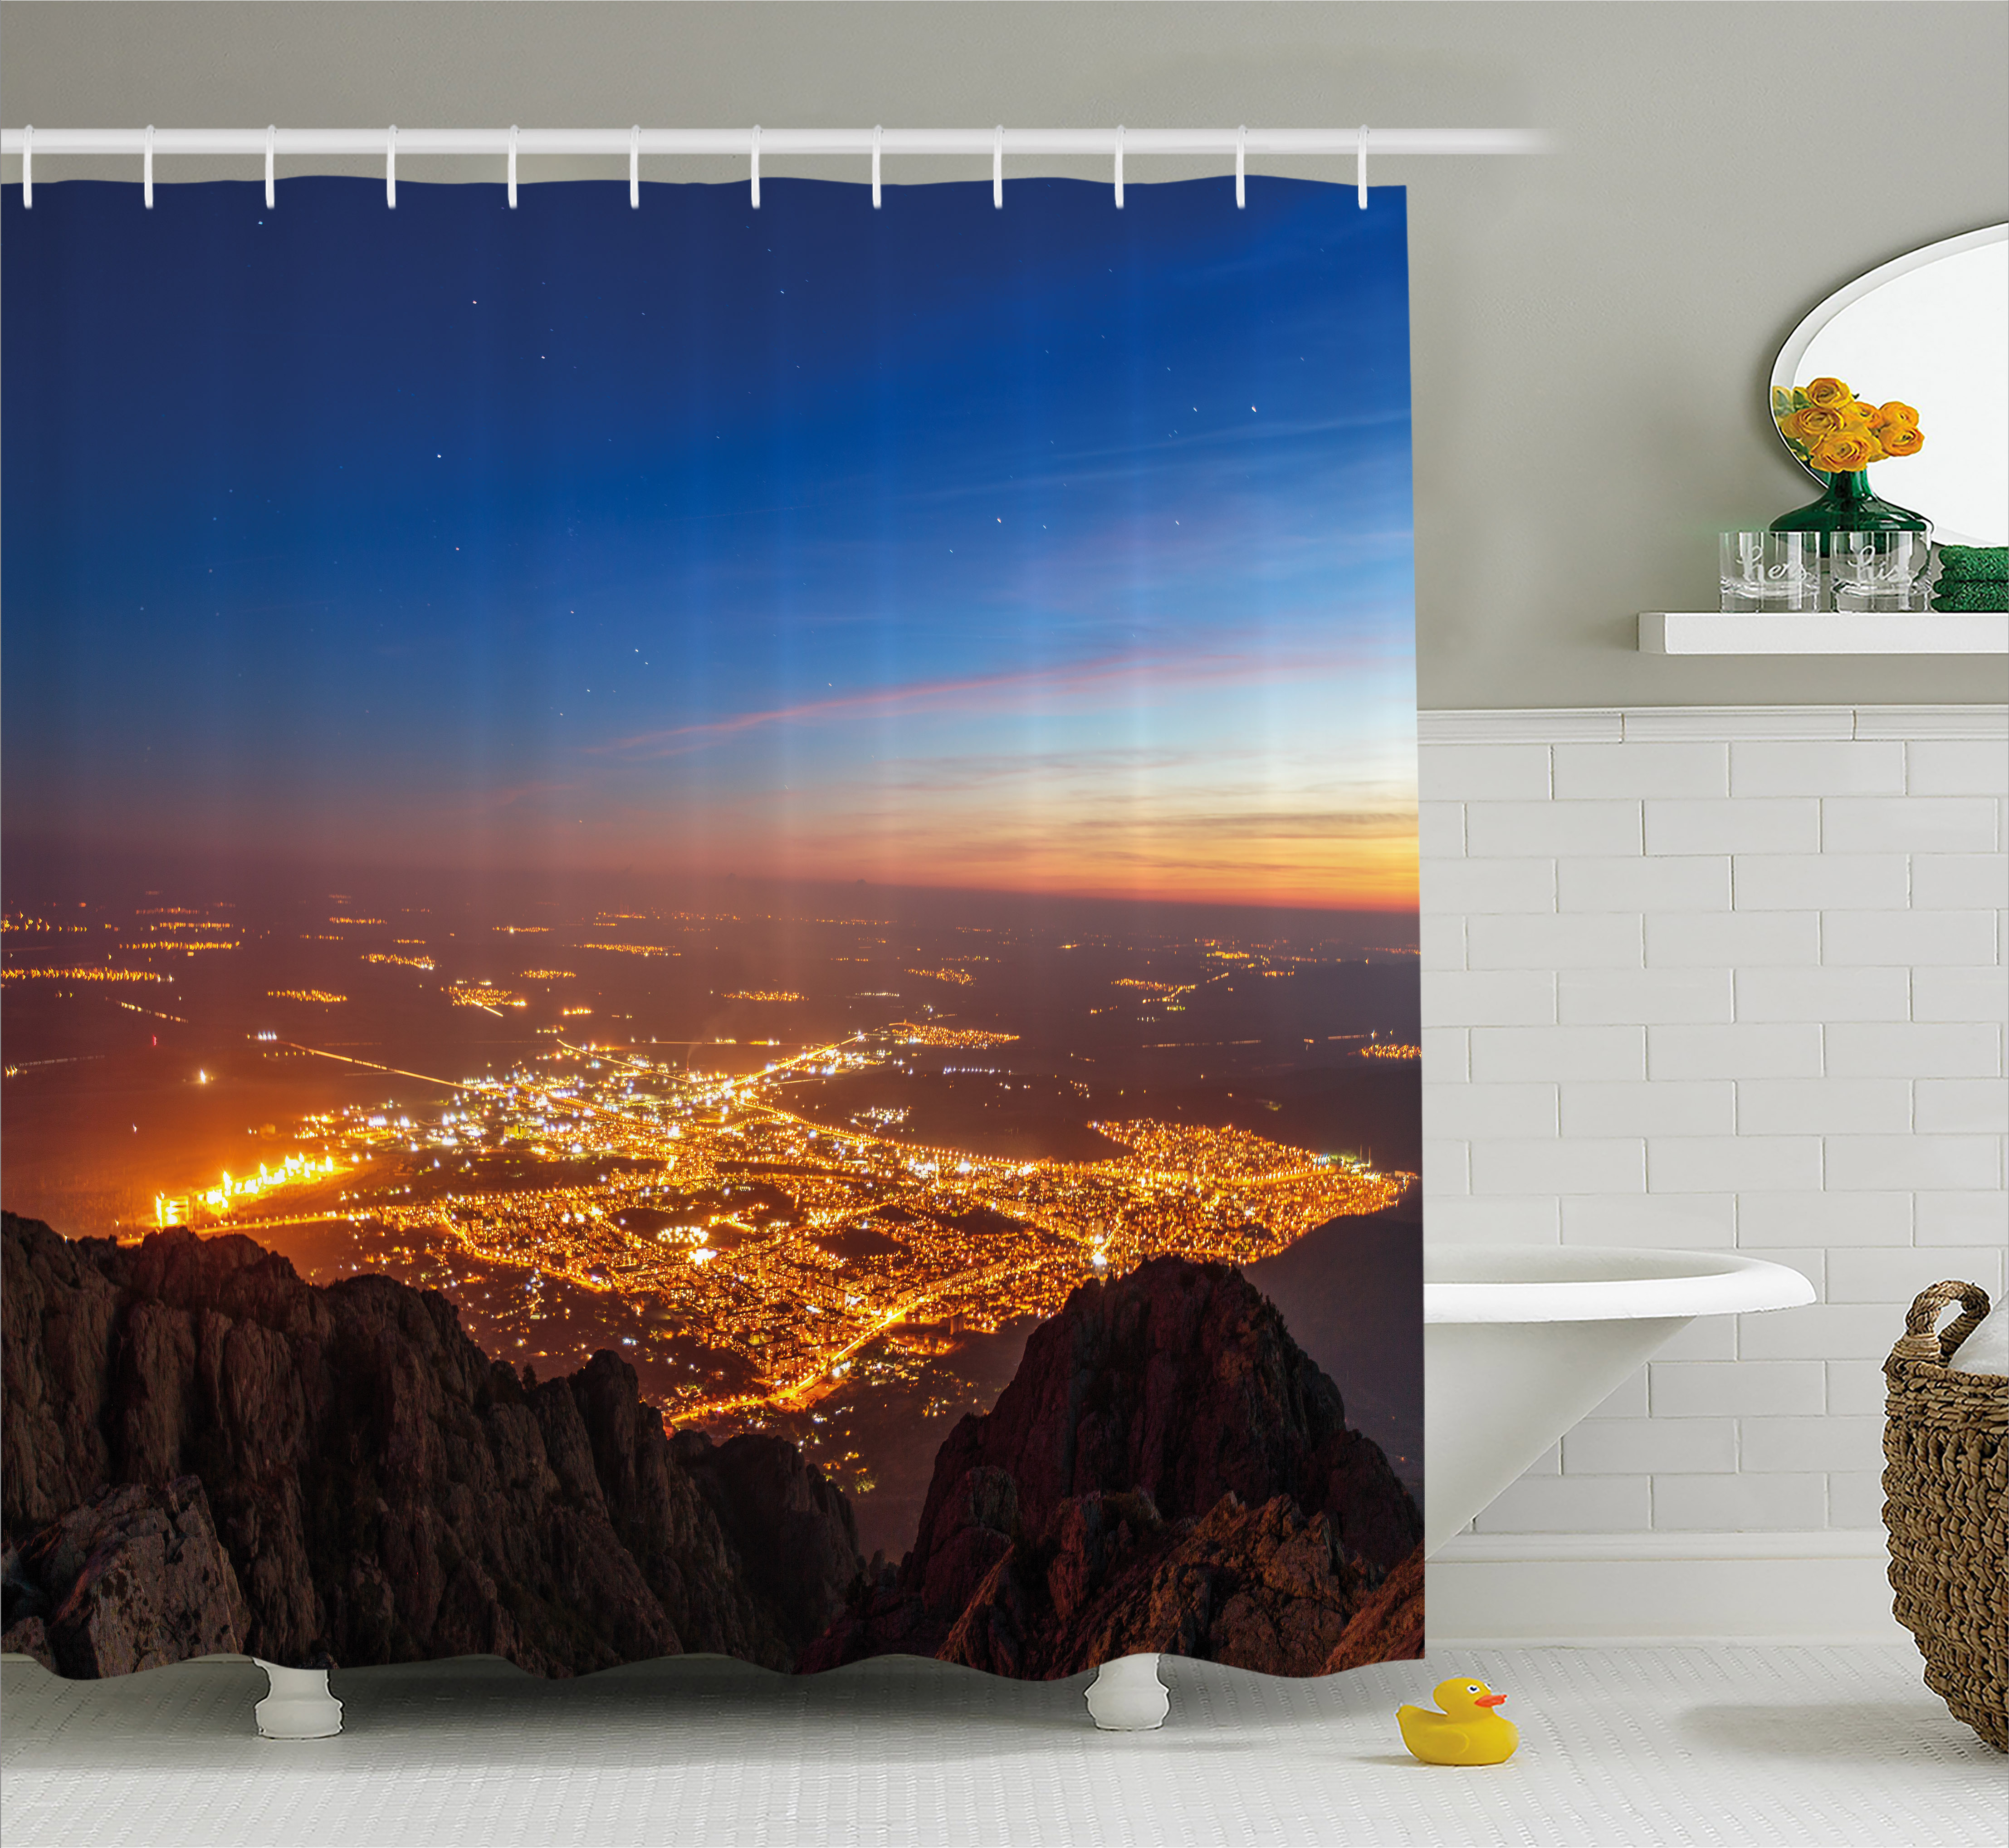 Landscape Shower Curtain, City Lights at Night Time Twilight Skyline Panoramic View over Mountaintop, Fabric Bathroom Set with Hooks, 69W X 70L Inches, Brown Orange Blue, by Ambesonne